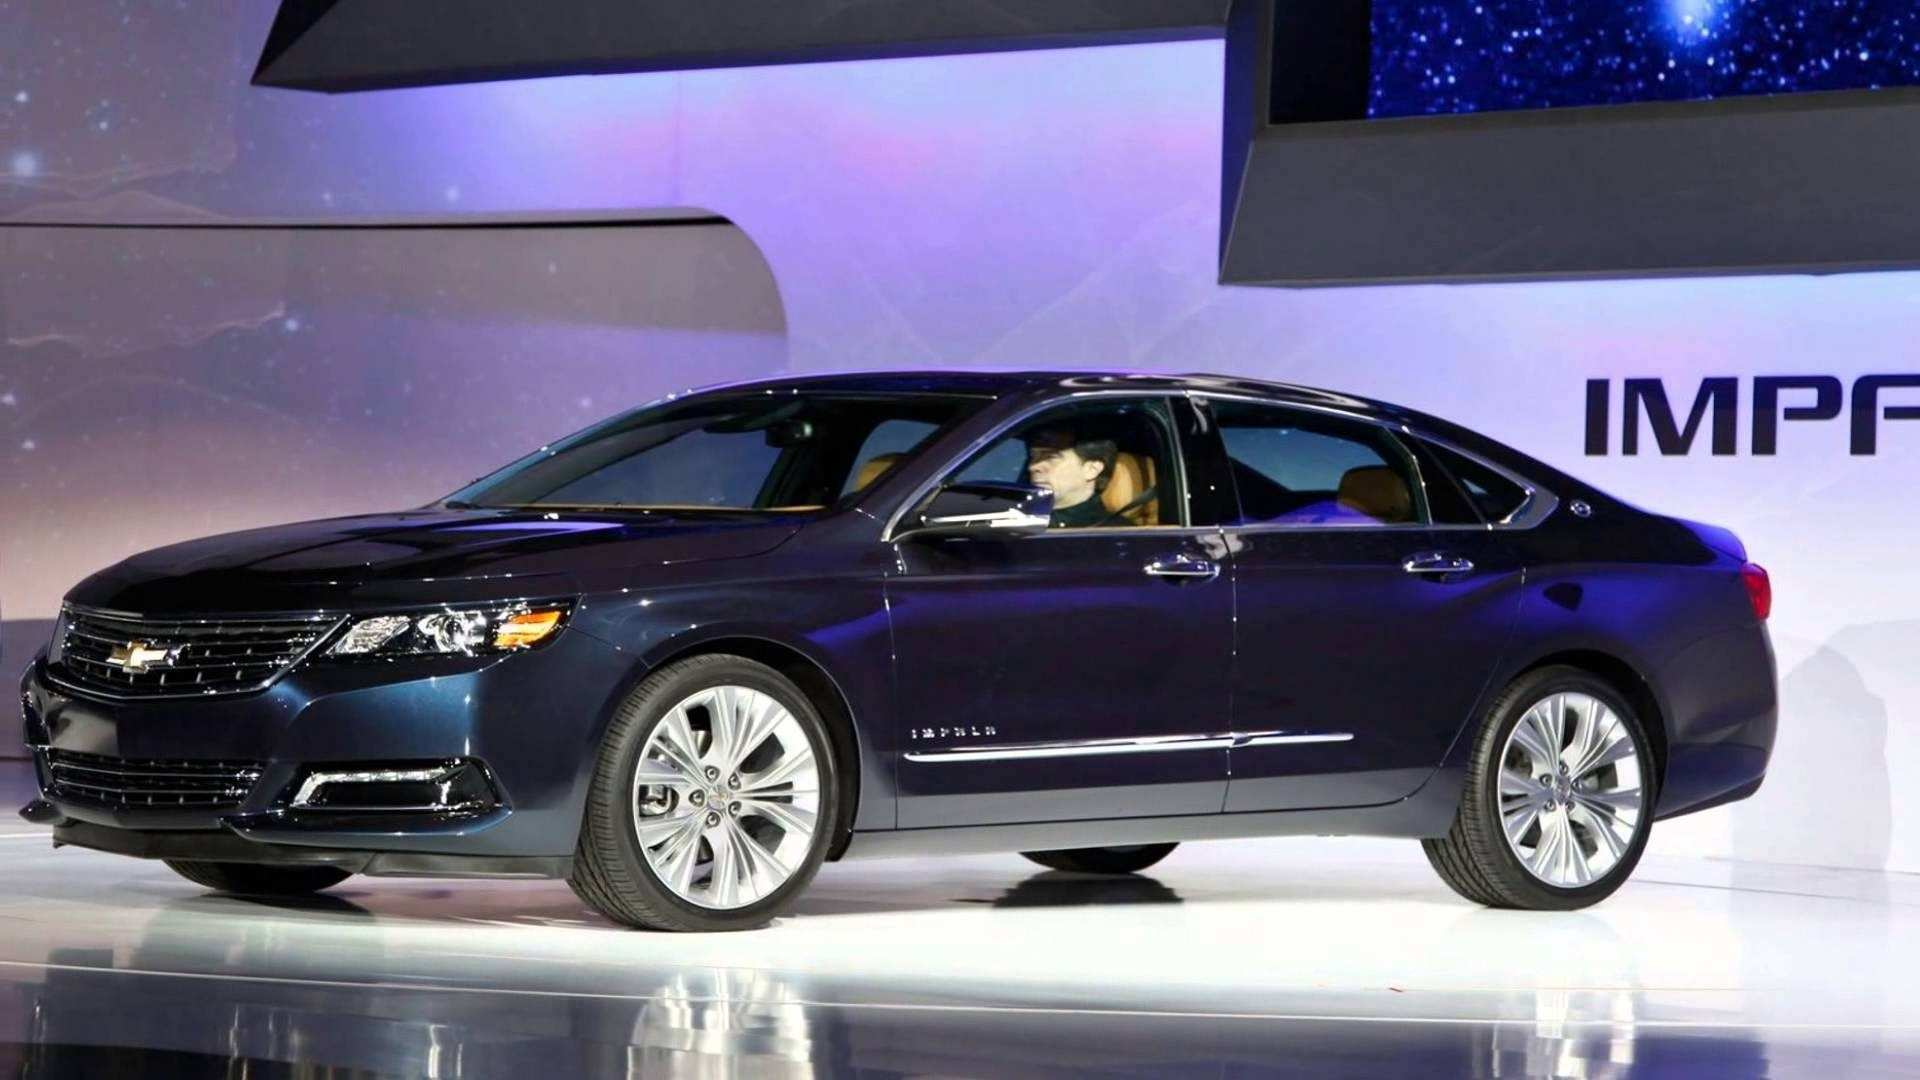 73 All New 2020 Chevy Impala Ss Ltz Coupe Price Design And Review